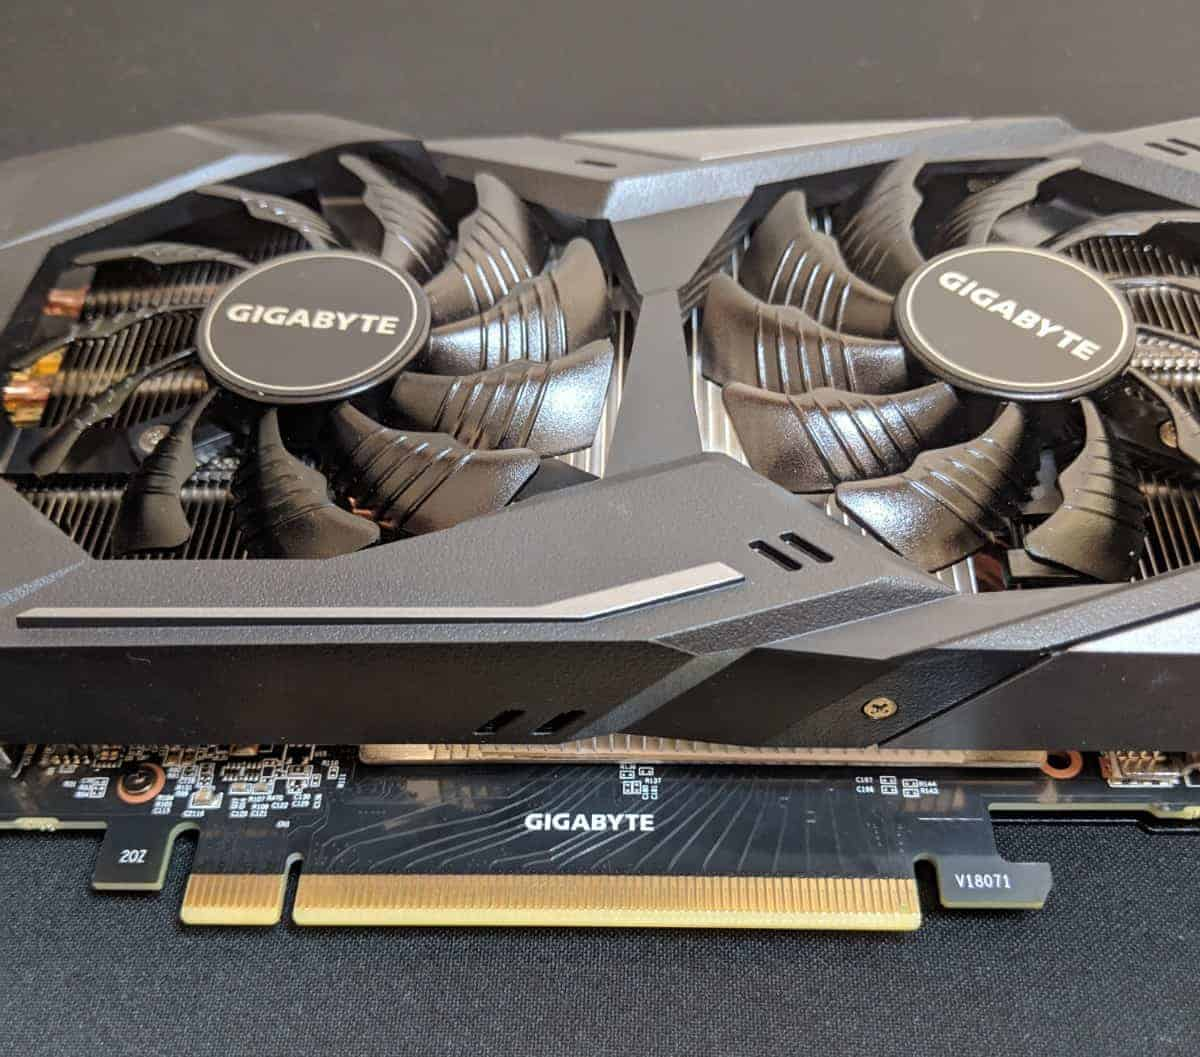 Gigabyte RTX 2060 Gaming OC Pro 6G Review - The Streaming Blog